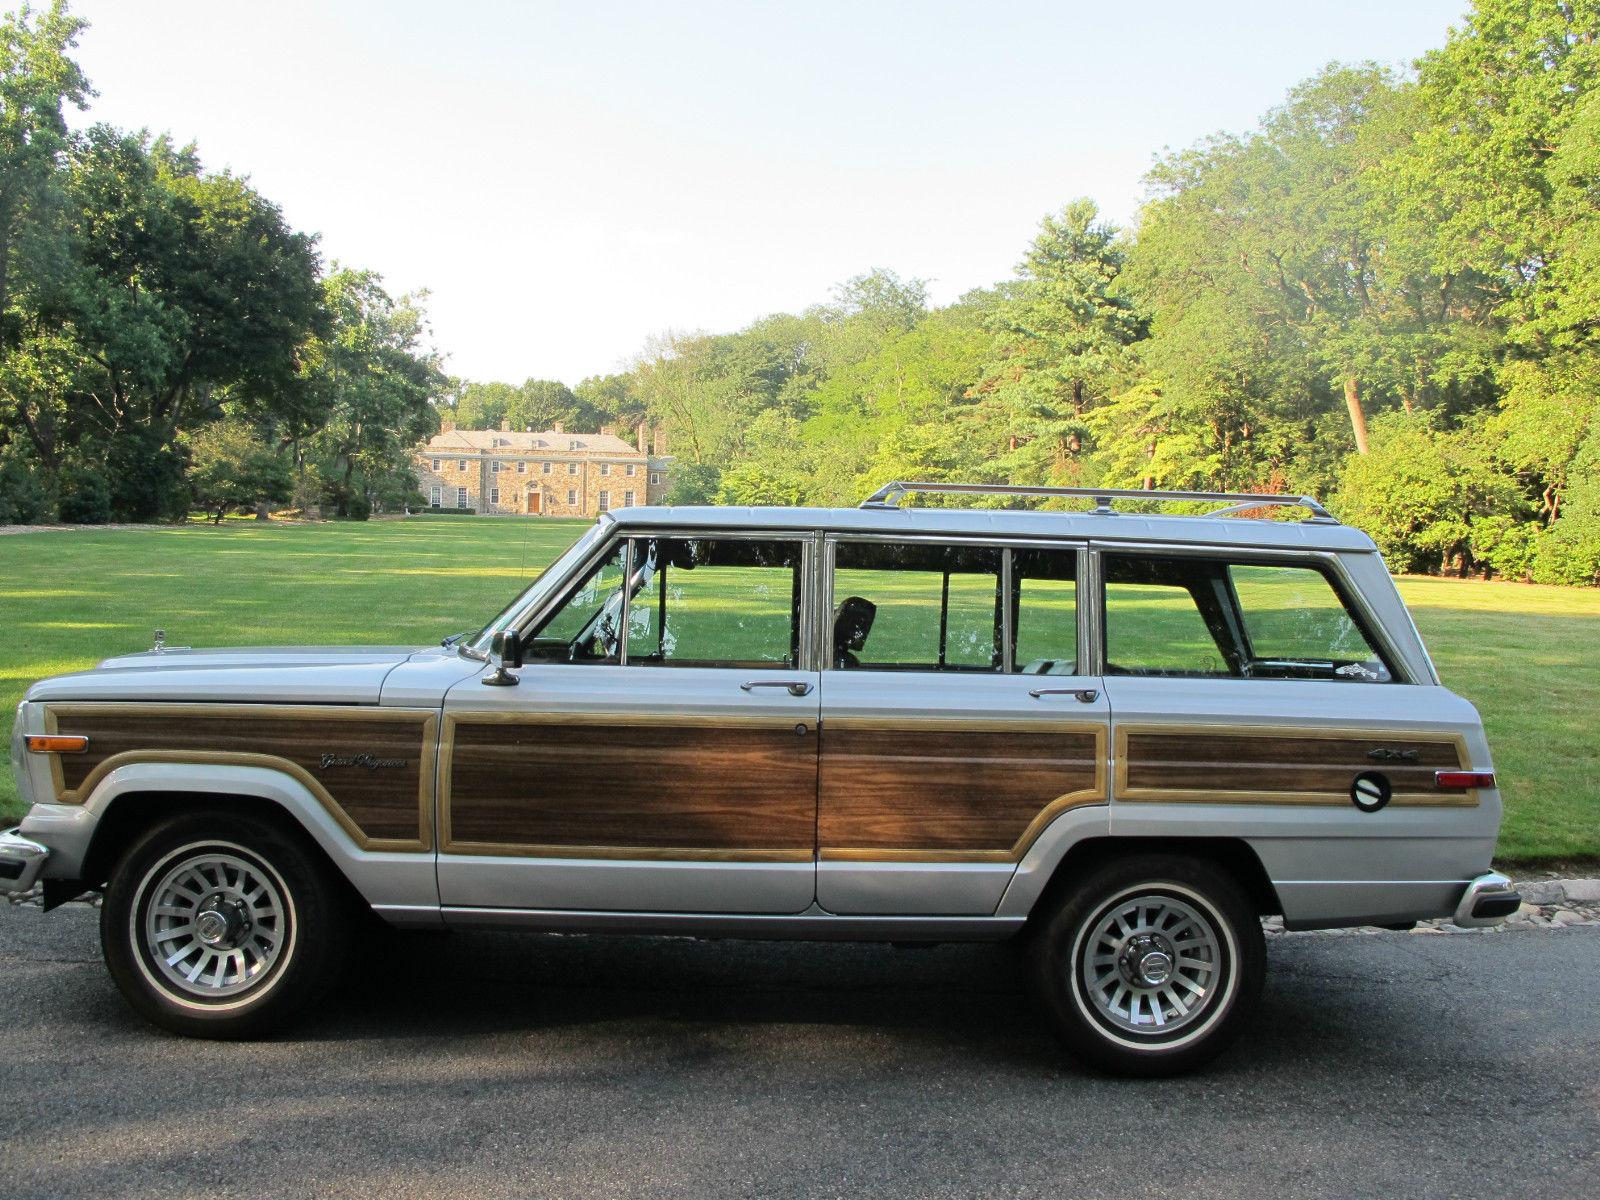 jeep grand wagoneer rare classic 1988 no rust for sale in. Black Bedroom Furniture Sets. Home Design Ideas